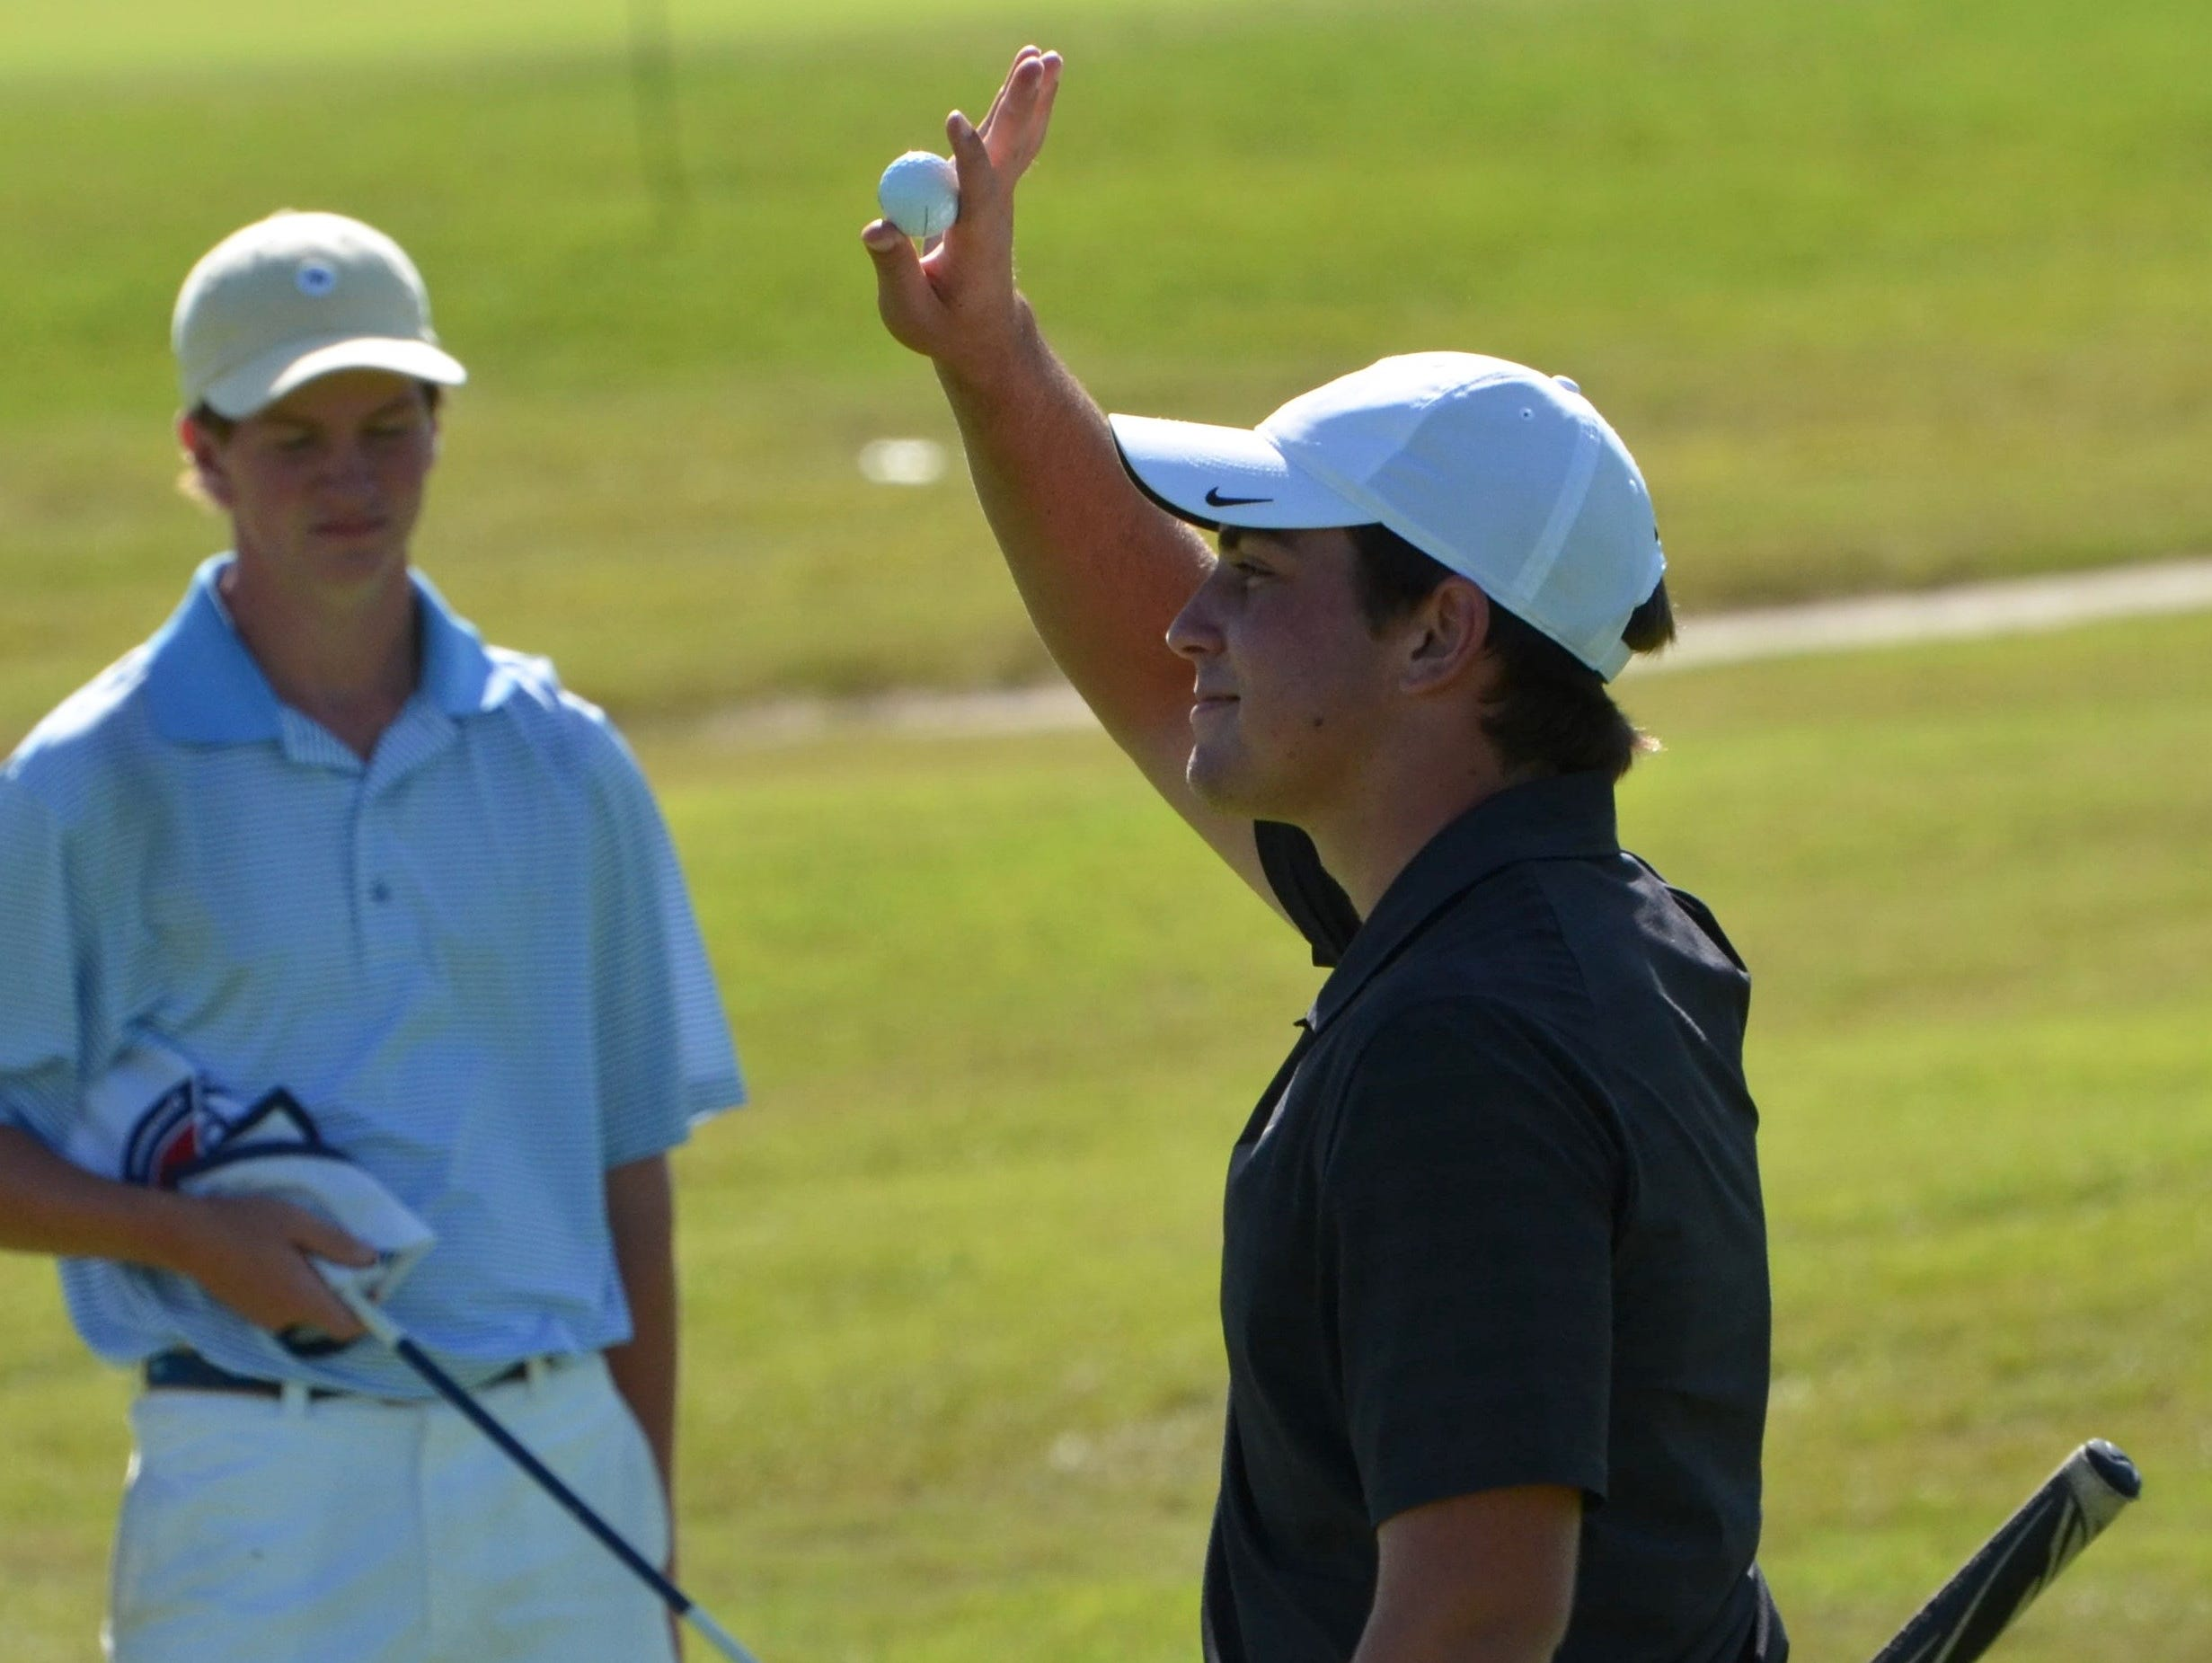 Ensworth's Brock Ochsenreiter waves to the crowd after carding a 5-under 139 for the tournament.